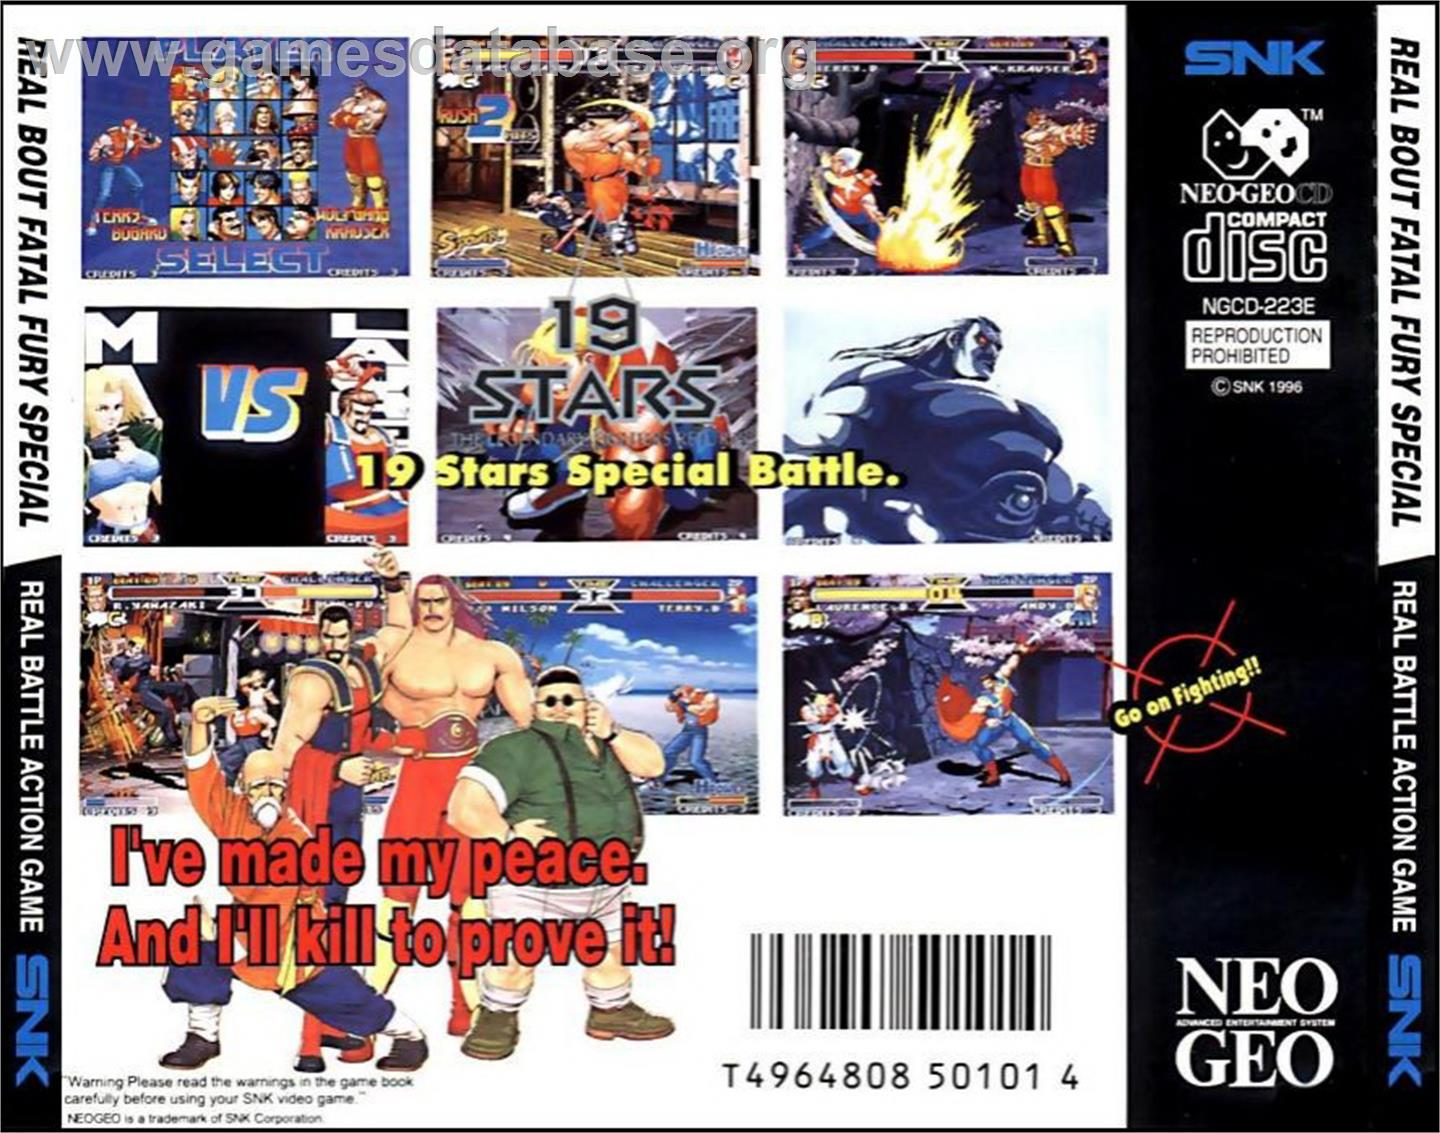 game music n a also on snk neo geo aes snk neo geo mvs video